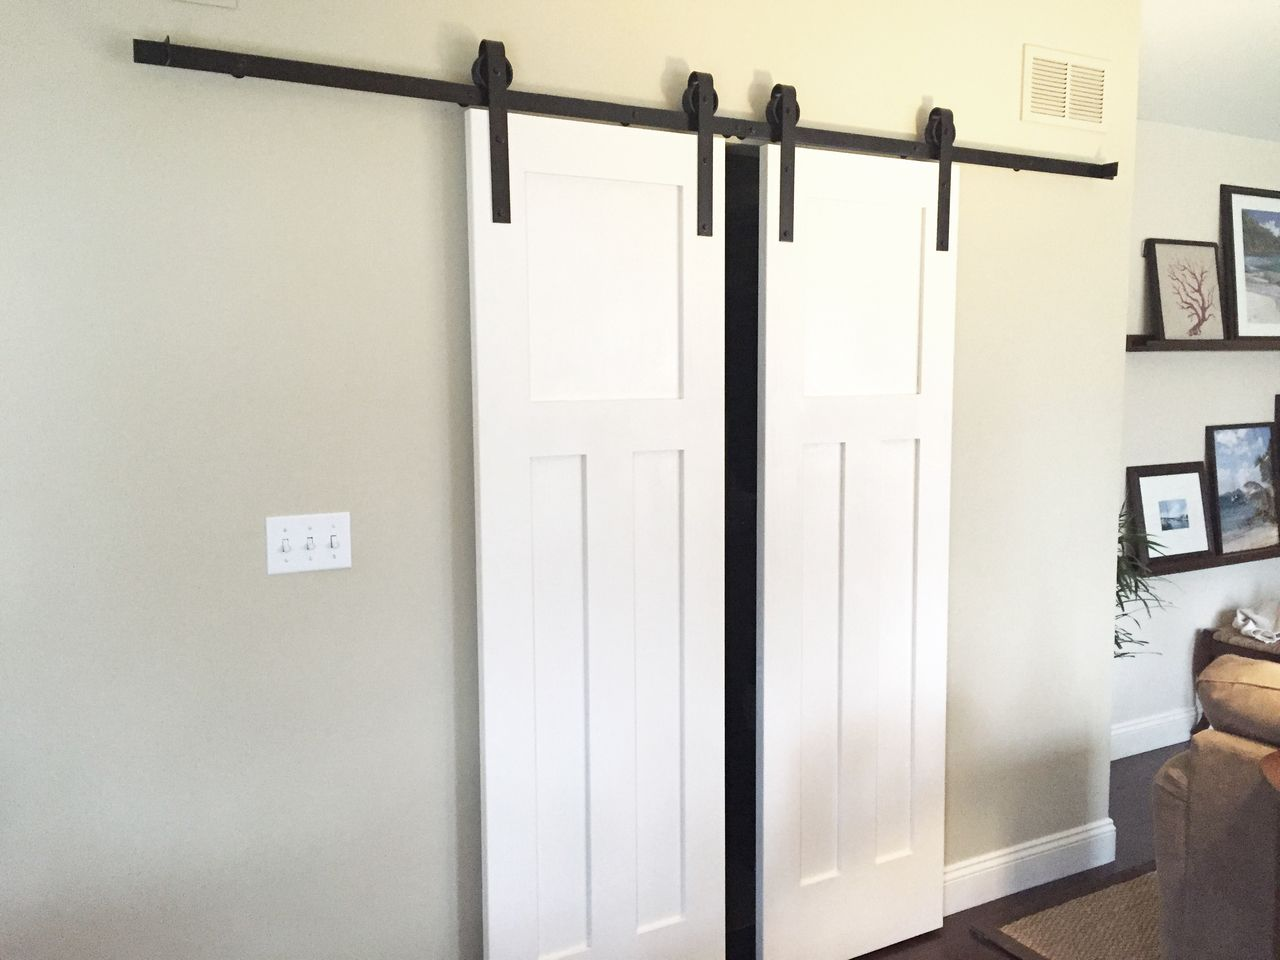 Double sliding barn door hardware kit for two doors with track double sliding barn door hardware kit for two doors with 12 feet track 144 vtopaller Image collections